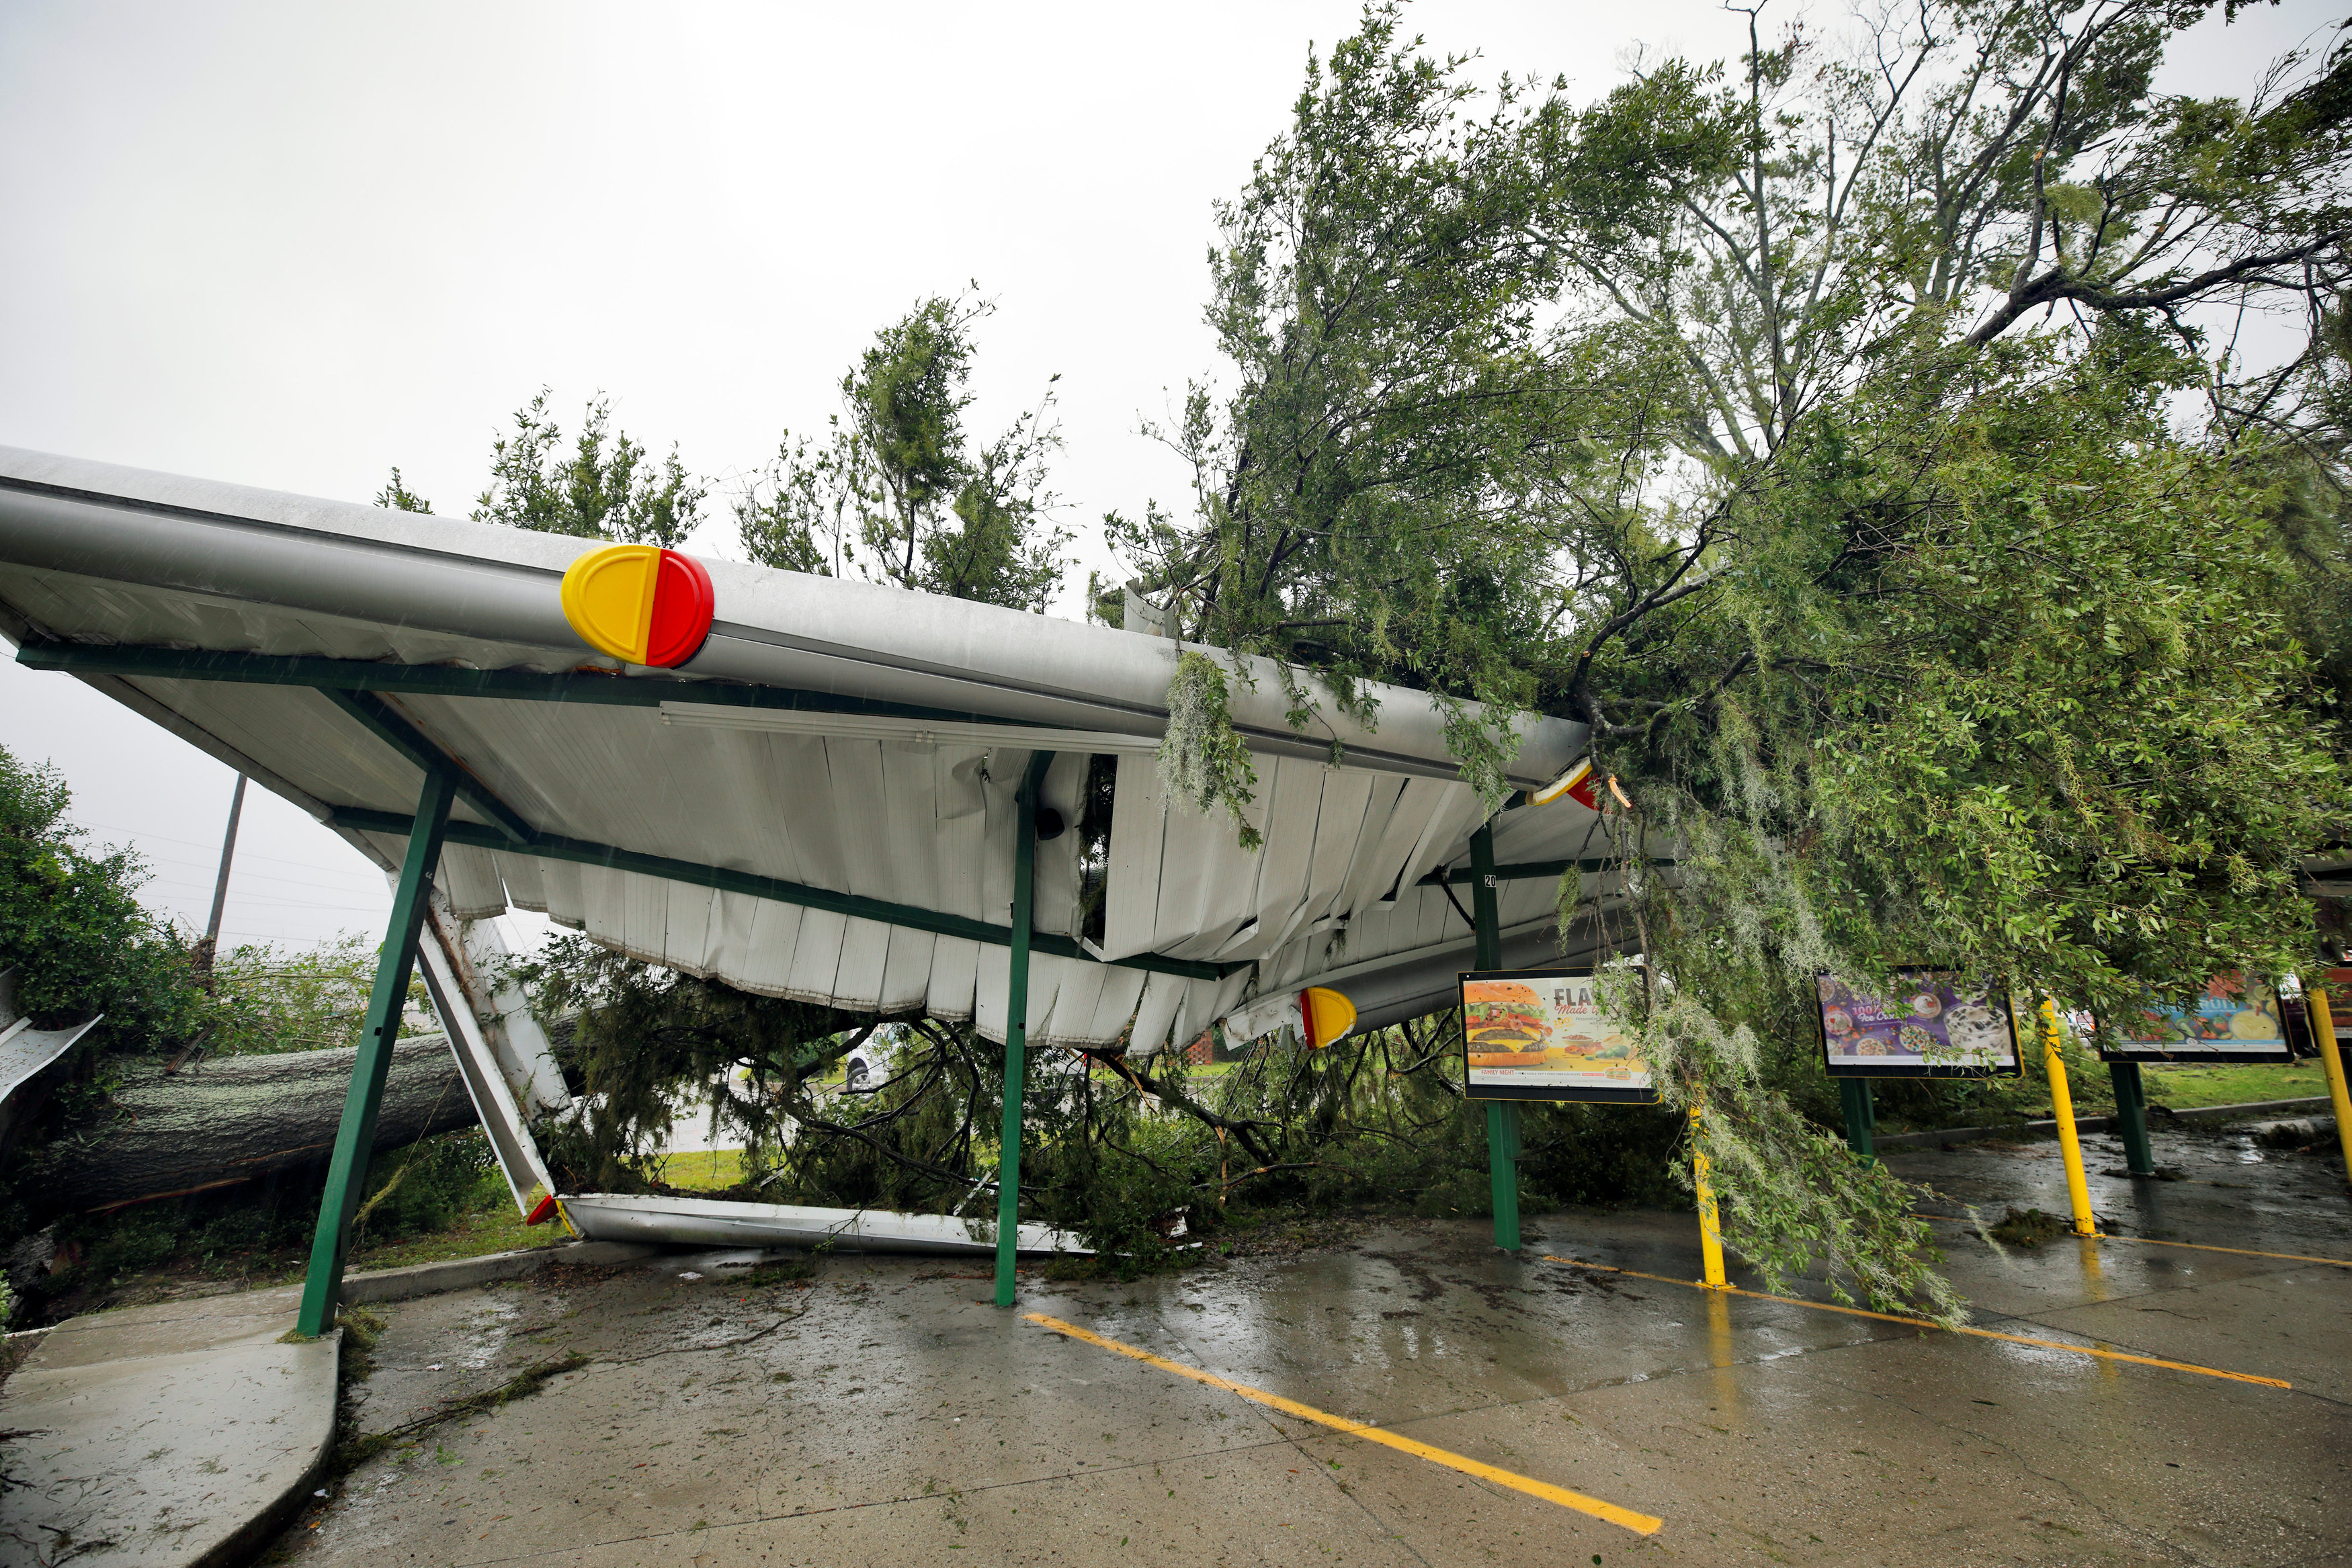 A fallen tree lies atop the crushed roof of a fast food restaurant after the arrival of Hurricane Florence in Wilmington, North Carolina, U.S., September 14, 2018. REUTERS/Jonathan Drake